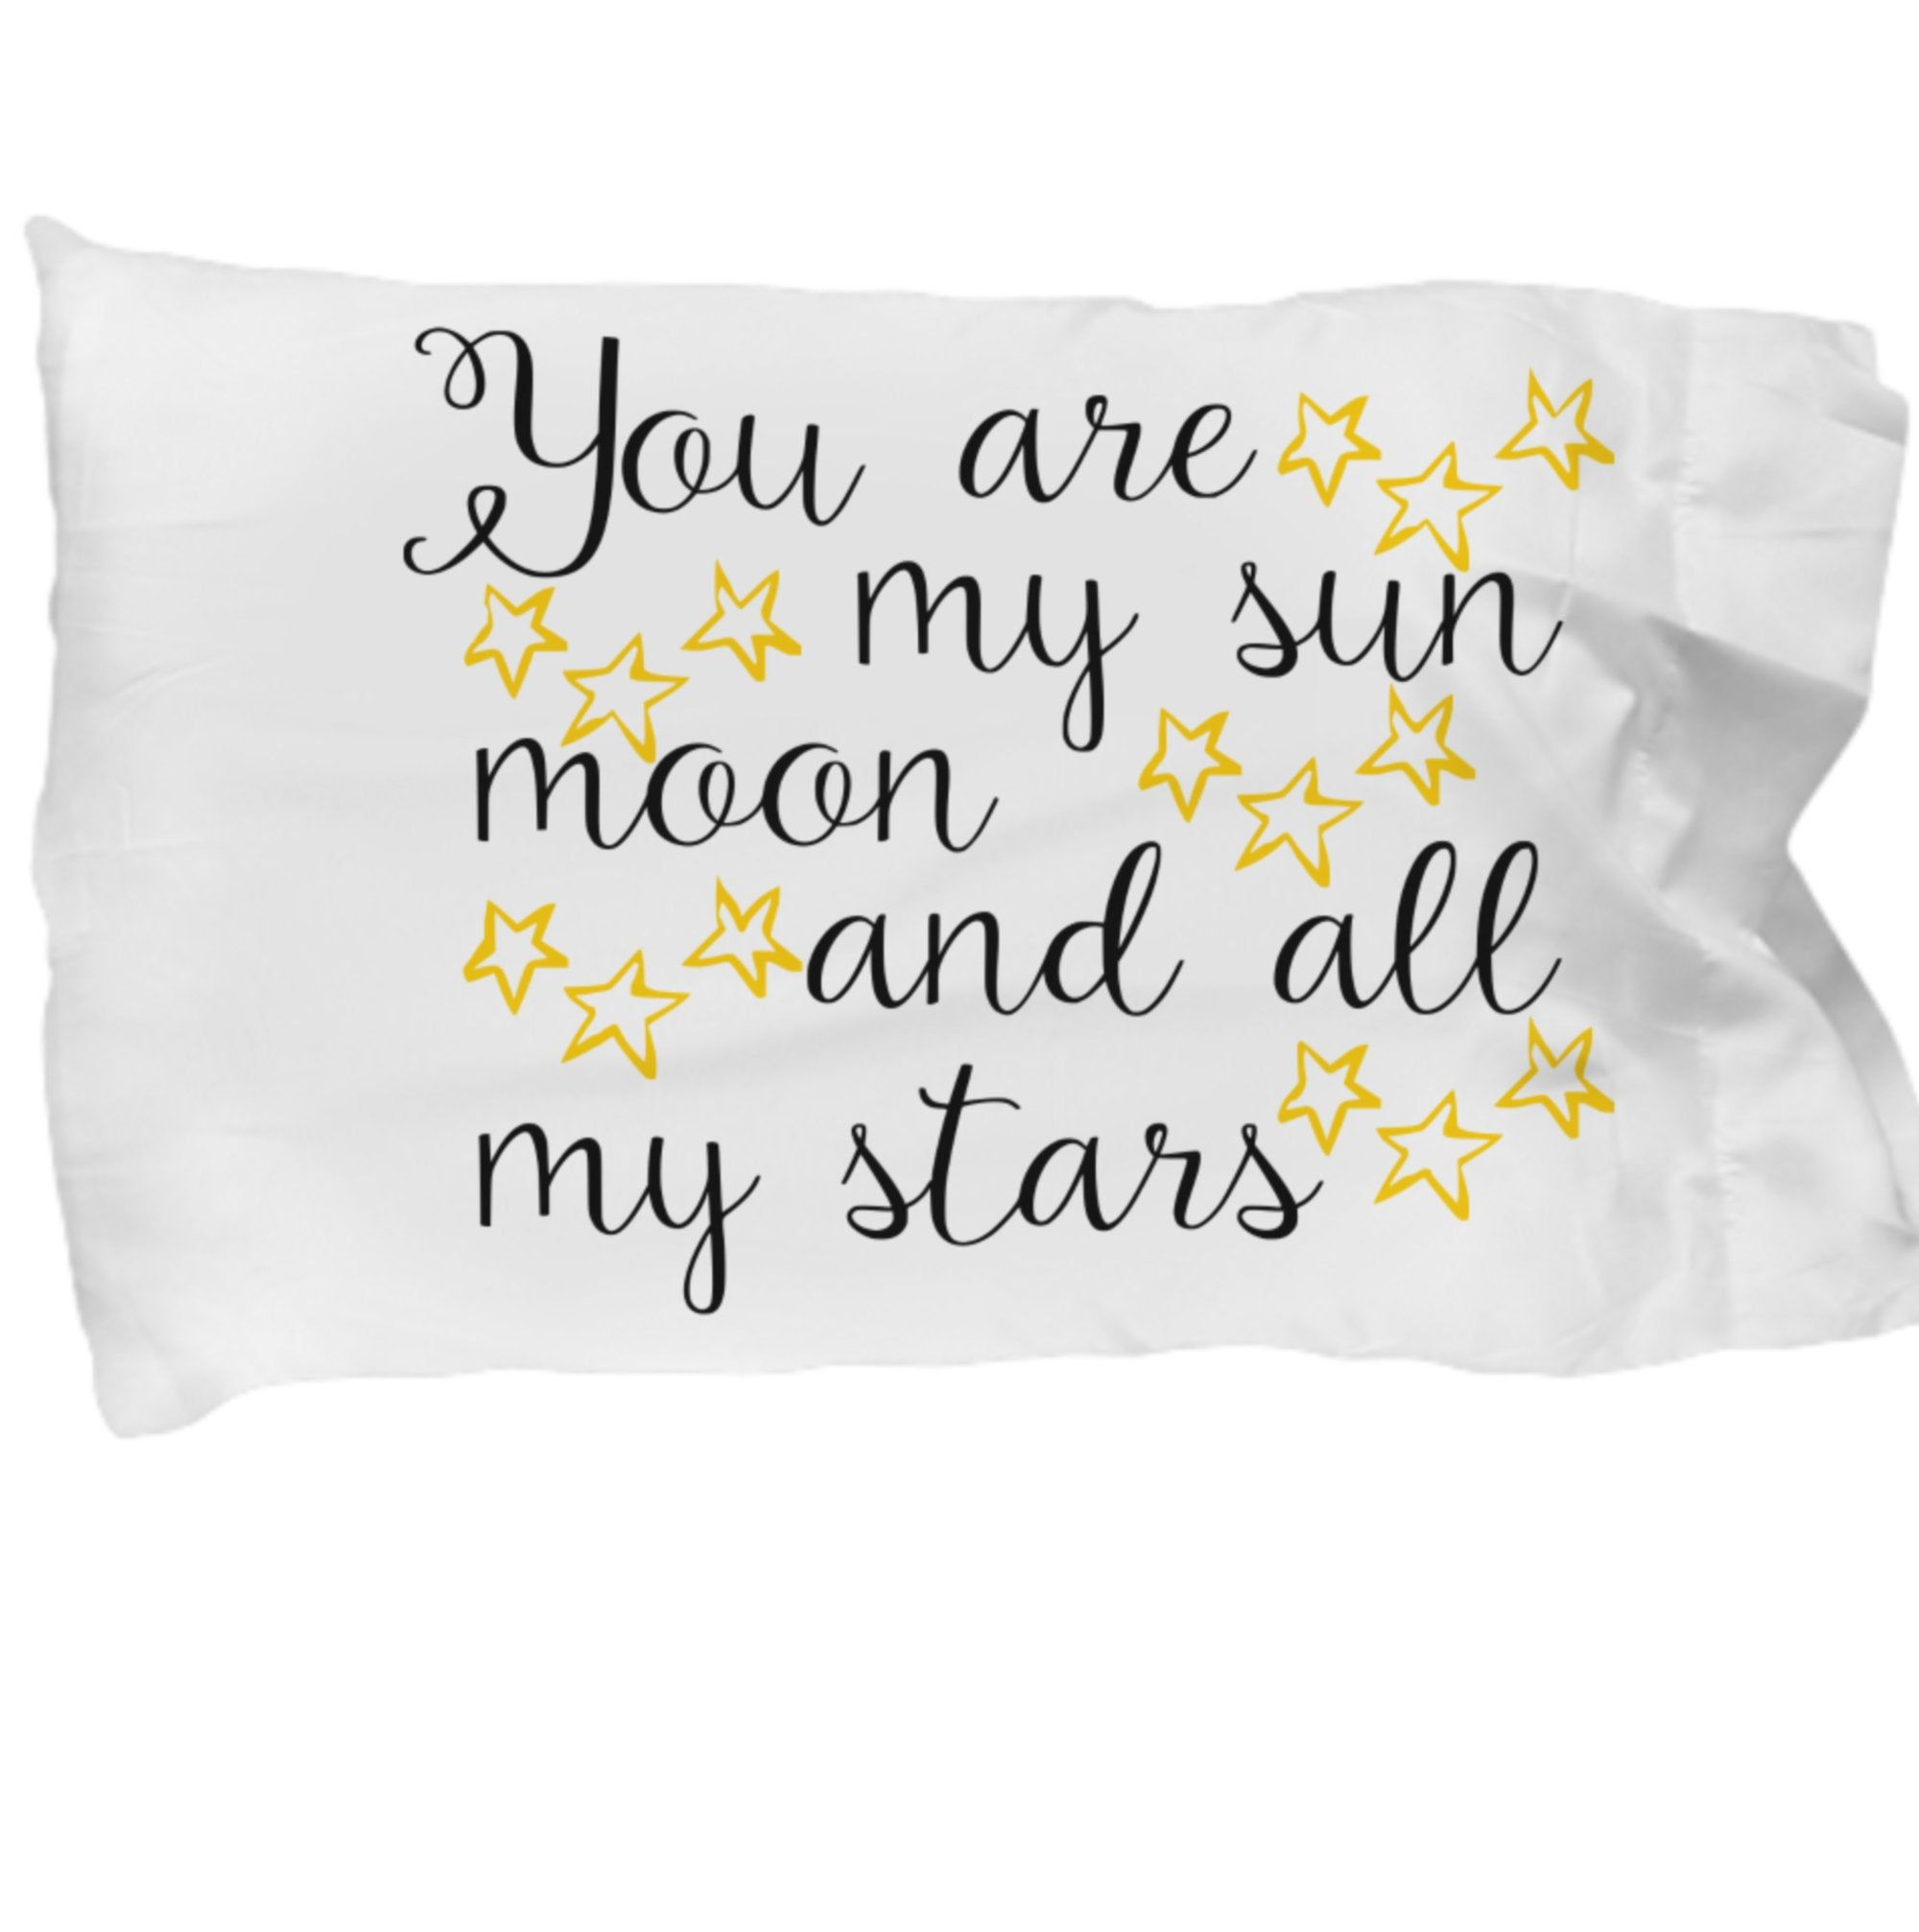 Pillowcase, Pillowcase with Sayings, Kids Pillowcase, Adult Pillow case, Bedroom Decor, Adult Bedding, Kids Bedding, You Are My Sun